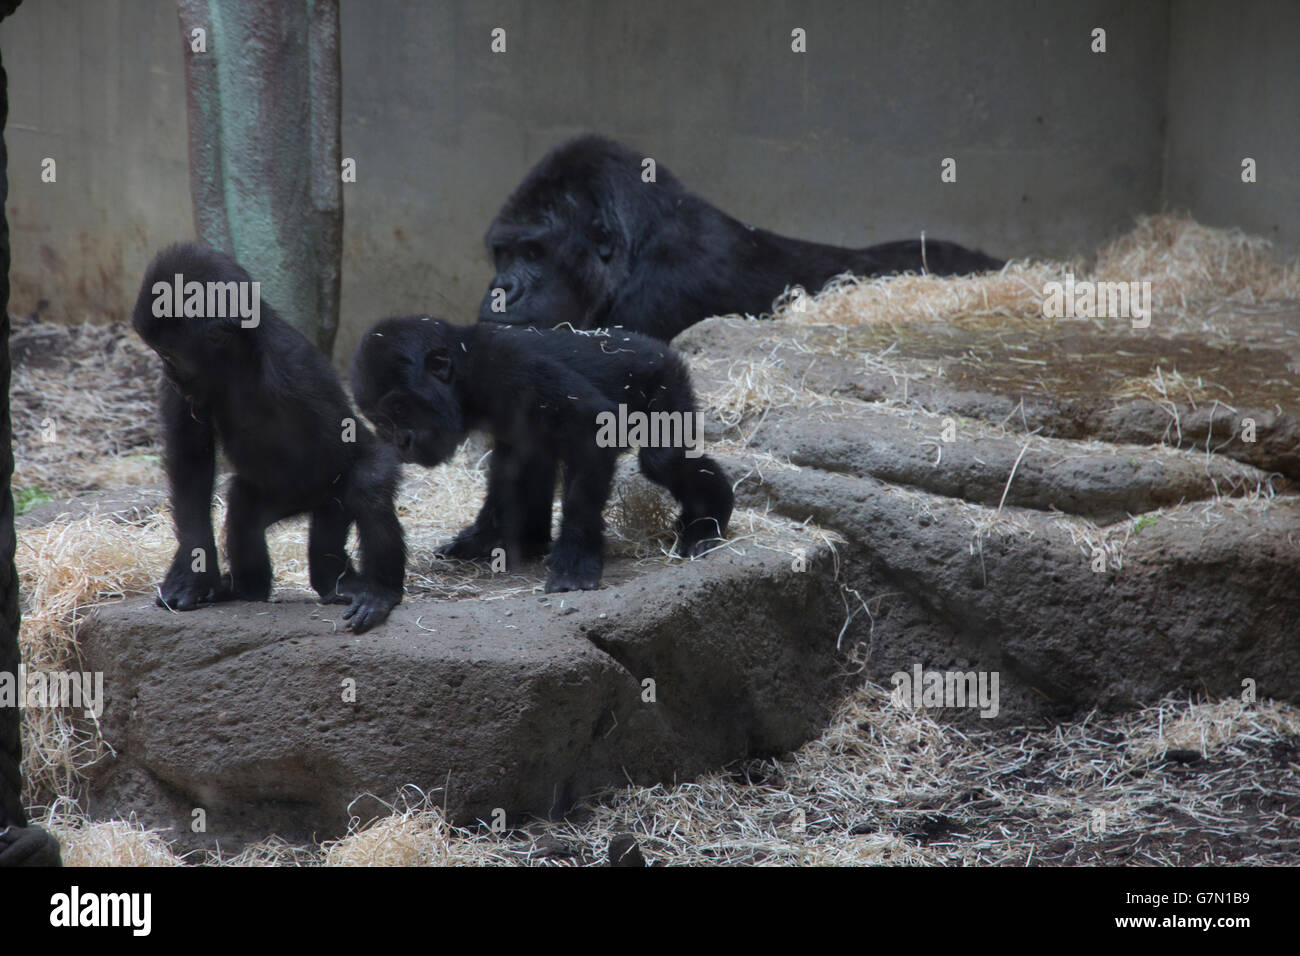 Visitors can interact with lowland gorillas and other primates at the Geigy Primate House at Basel Zoo, Basel, Switzerland. - Stock Image